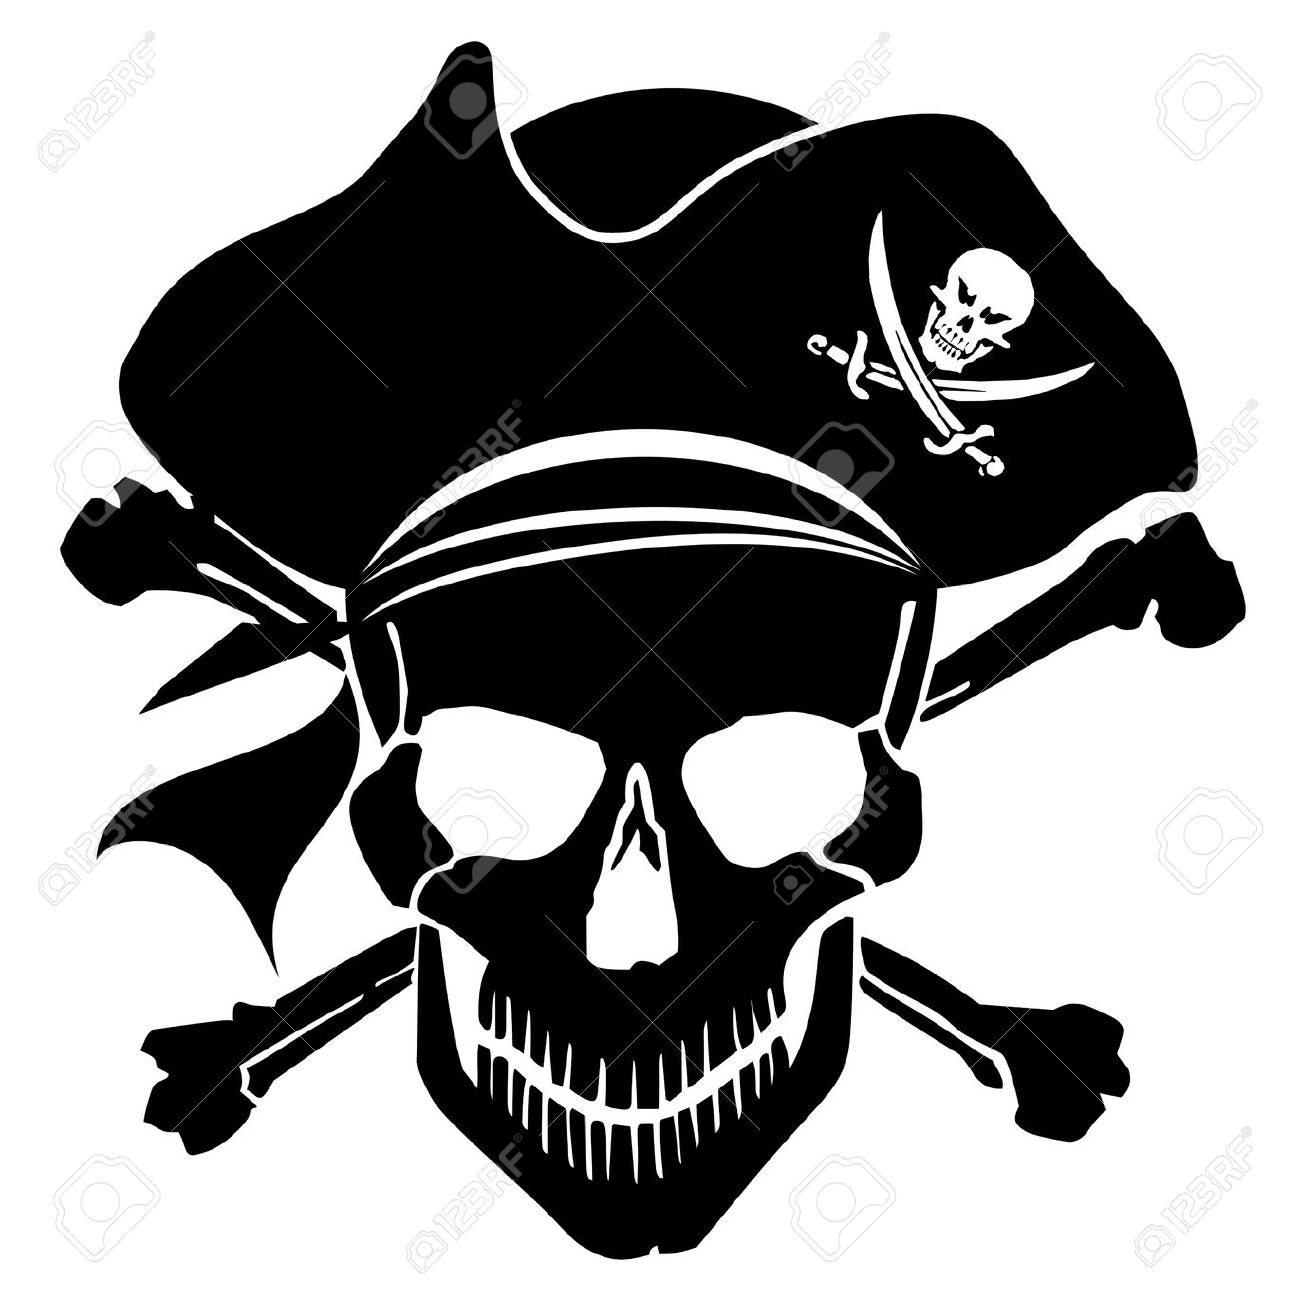 Pirate Skull Captain With Hat And Cross Bones Clipart Illustration.